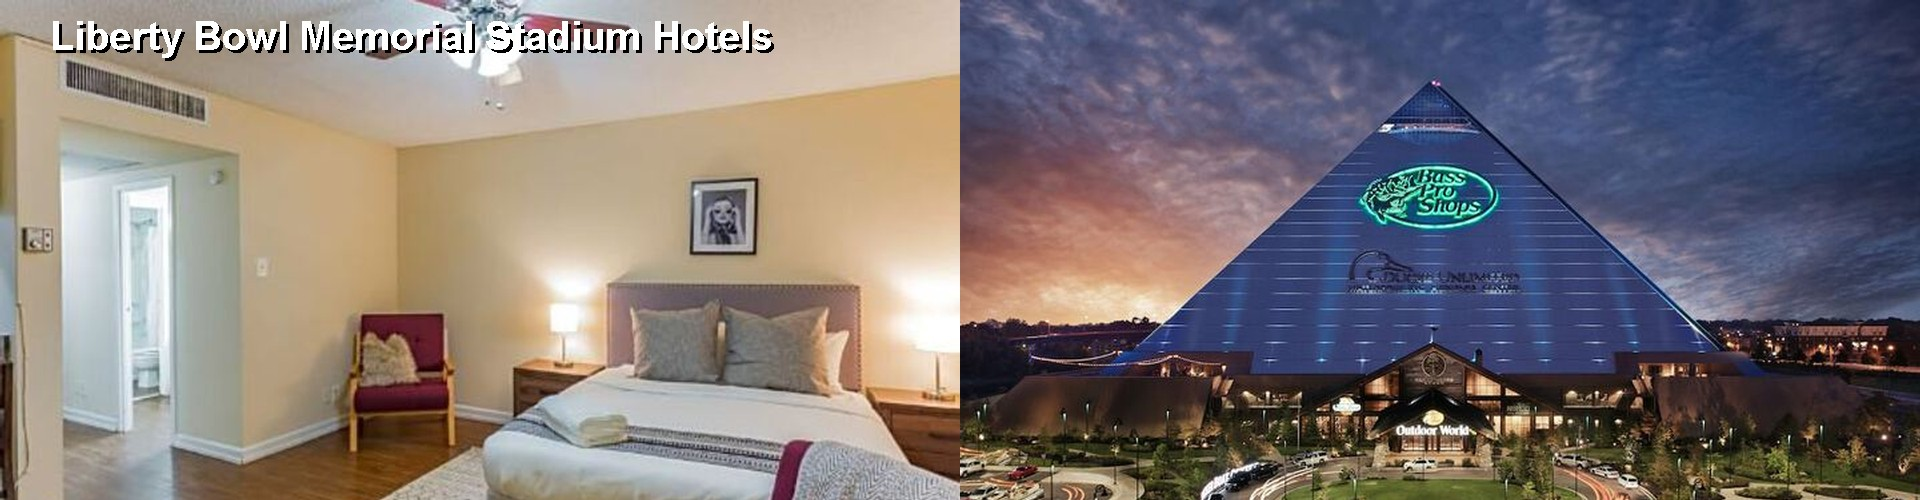 5 Best Hotels near Liberty Bowl Memorial Stadium